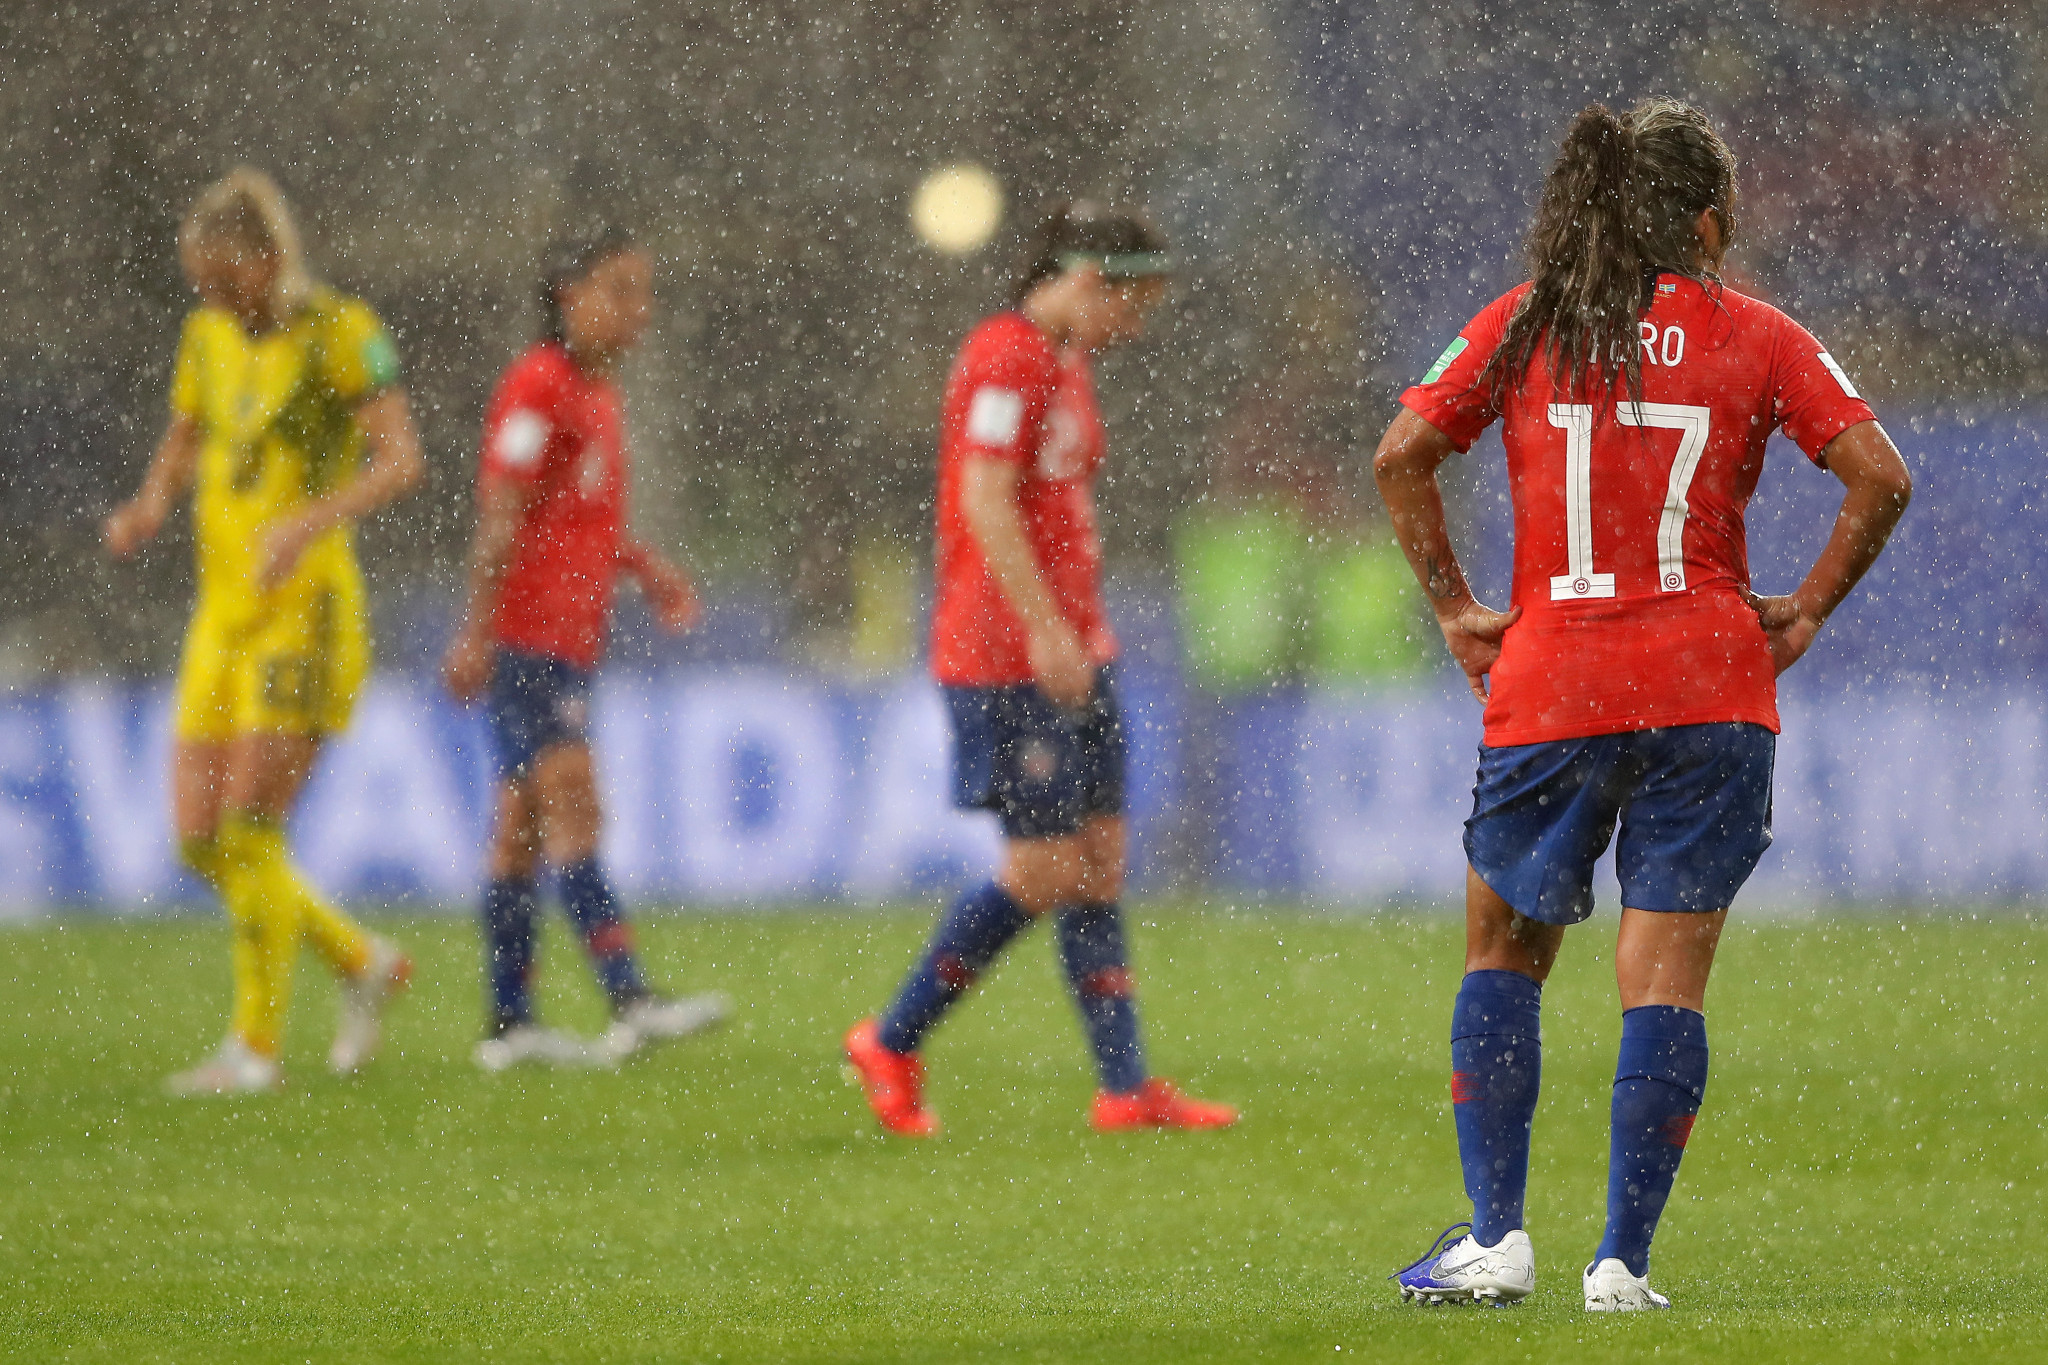 Stormy weather forces break in Sweden's clash with Chile at FIFA Women's World Cup